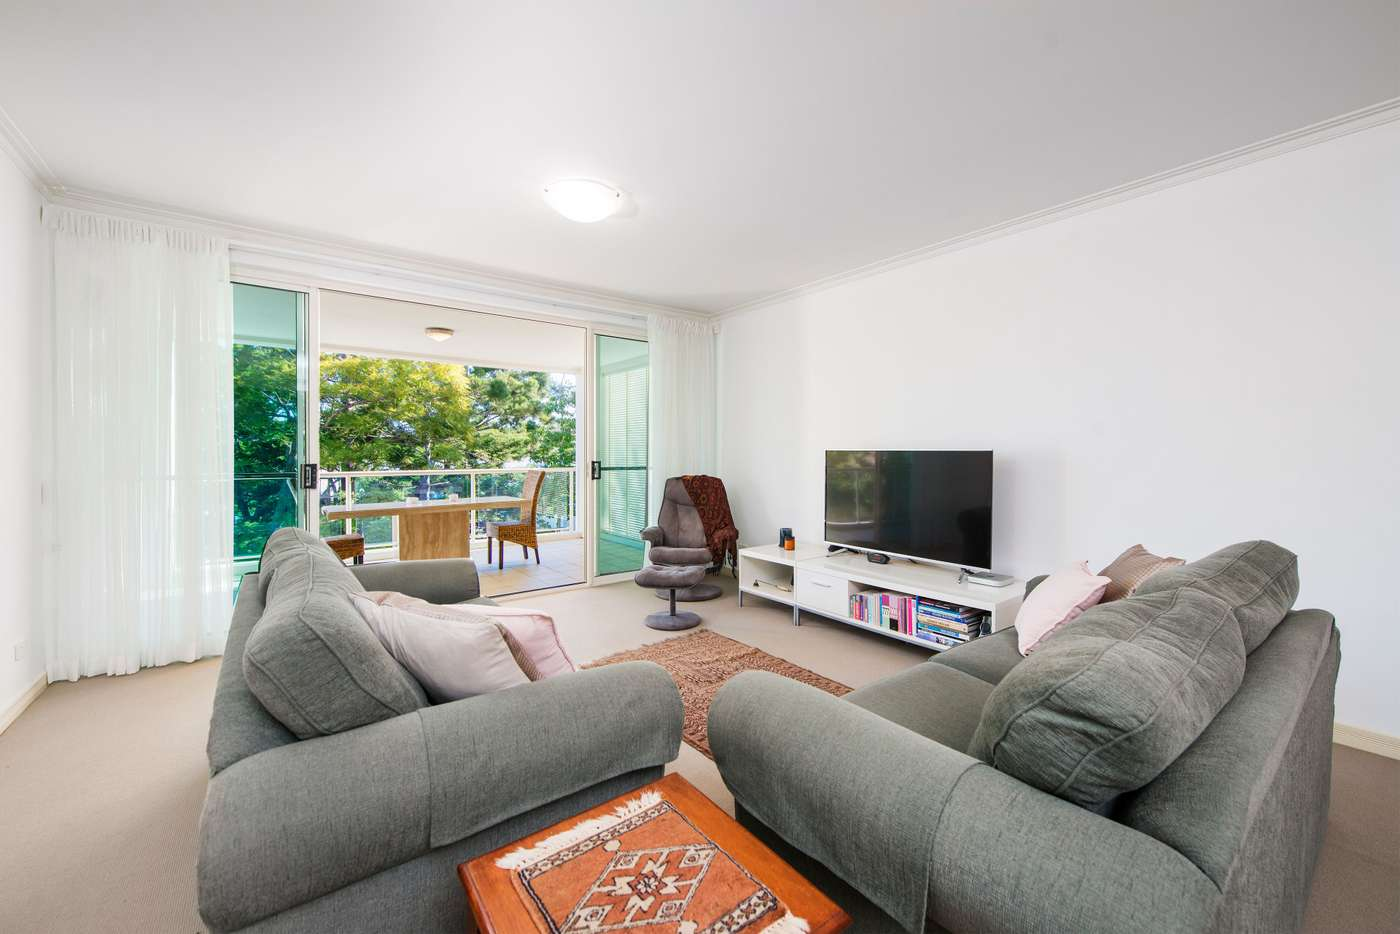 Sixth view of Homely unit listing, 4111 'Archer Hill' Royal Pines Resort, Benowa QLD 4217